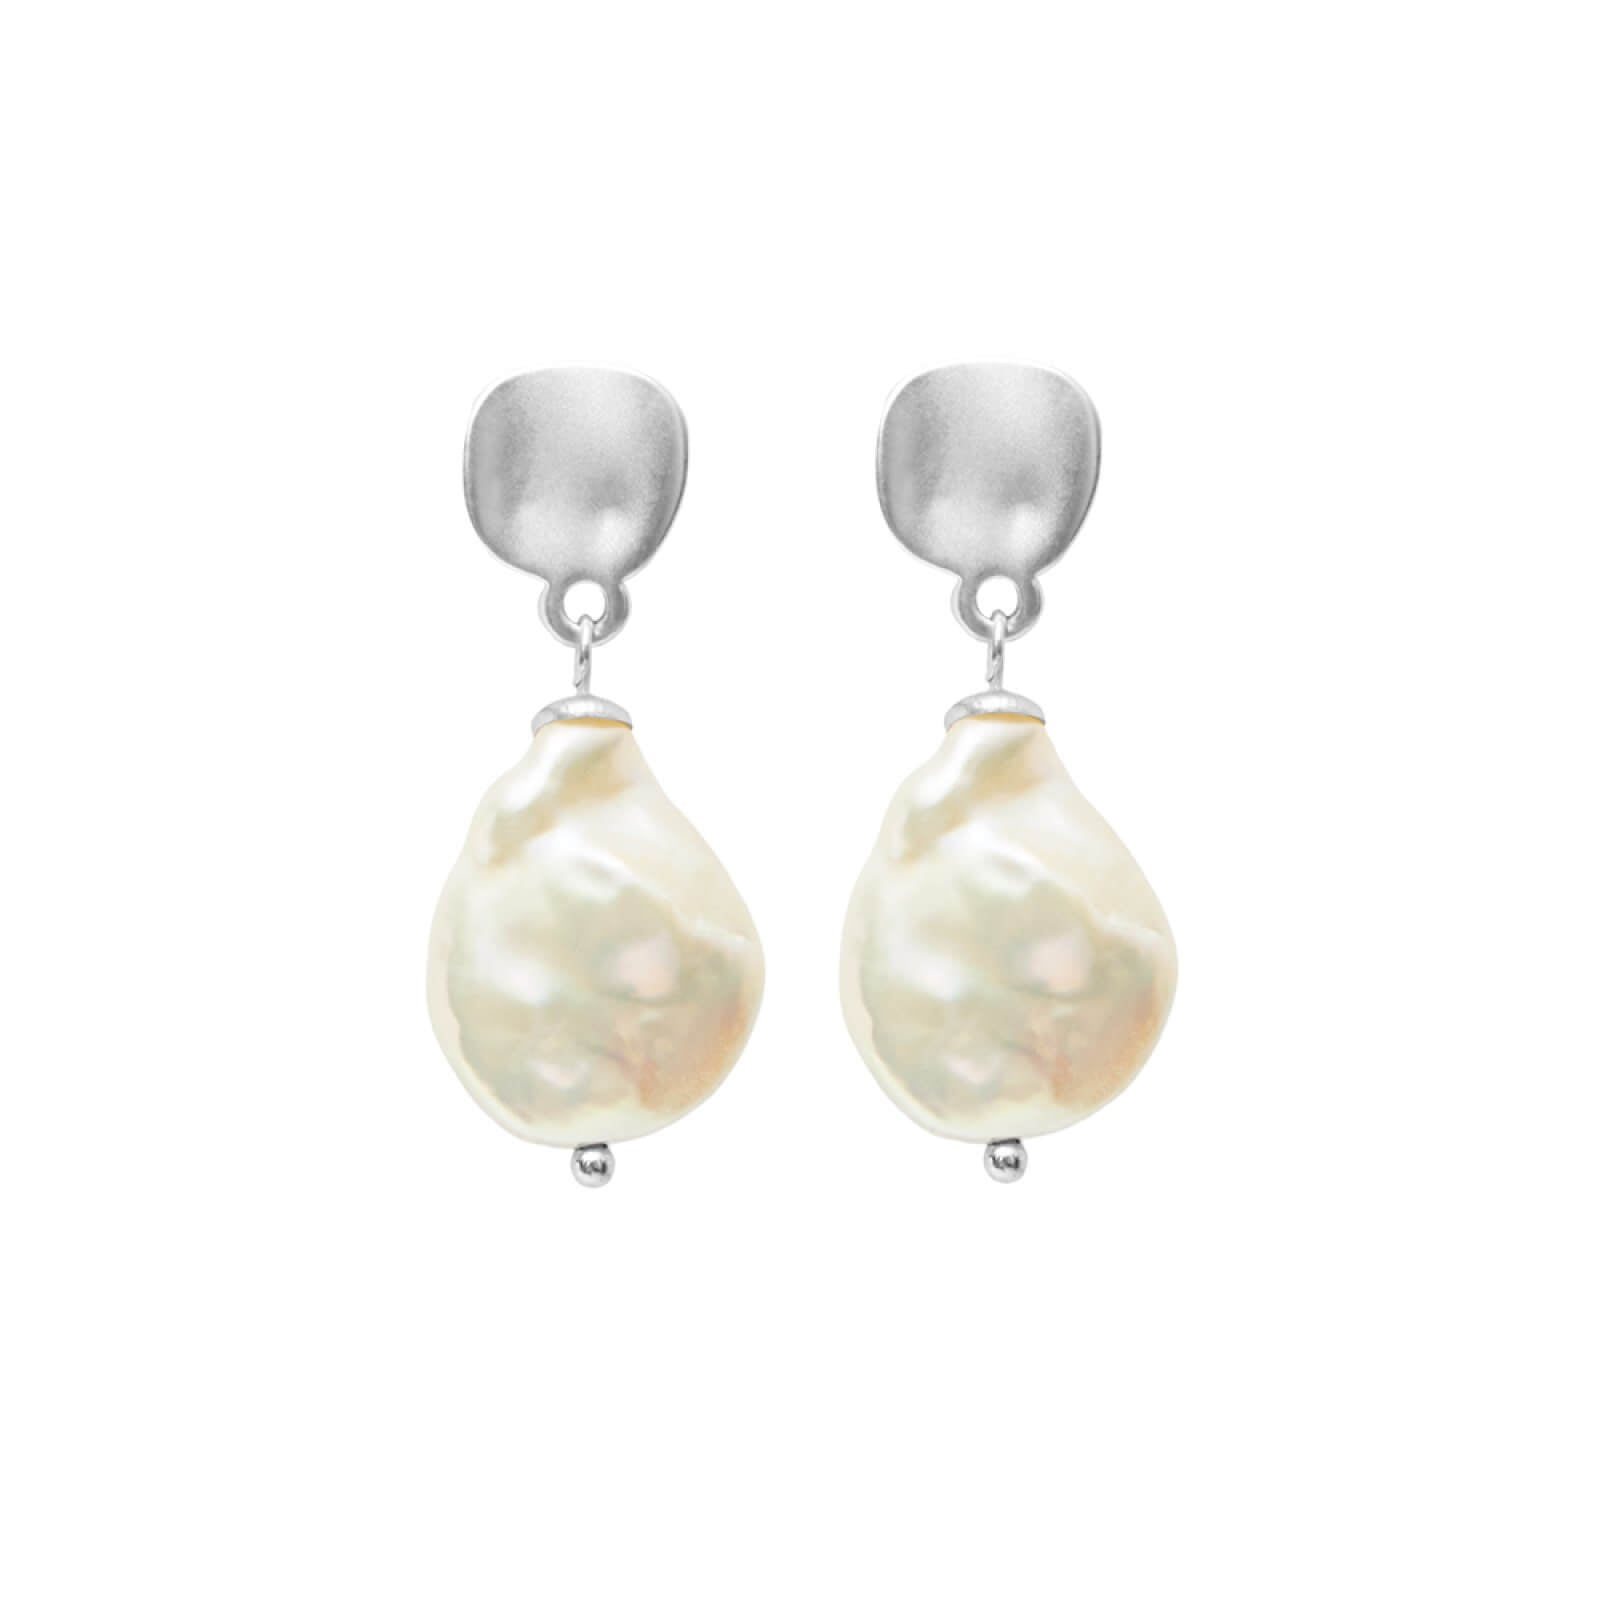 DANSK Audrey Pearl Earrings Silver